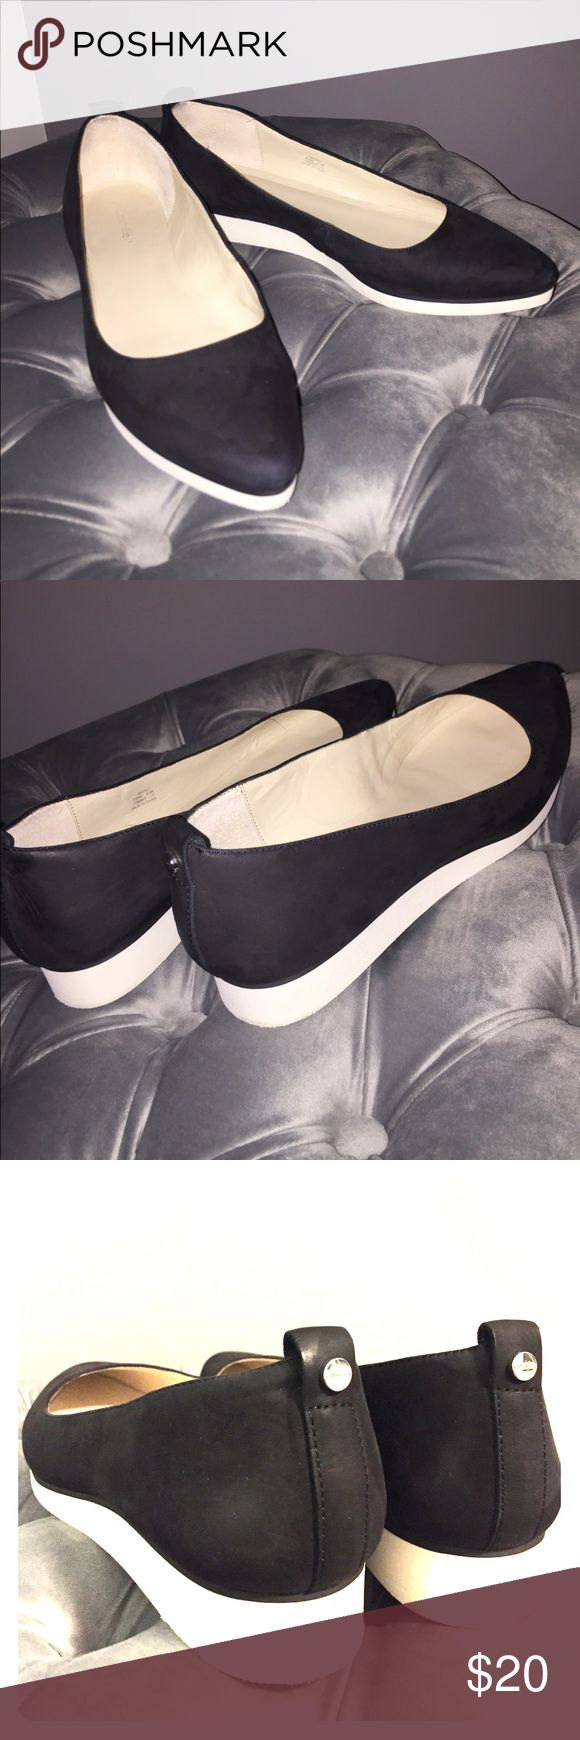 Black and white Calvin Klein slip on shoe Black and white Calvin Klein slip on shoe. Size 8.5 Medium. Worn twice. I deep cleaned them. White foam sole. Clean inside. Slightly pointed toe front. Very cute shoe! Calvin Klein Shoes Flats & Loafers